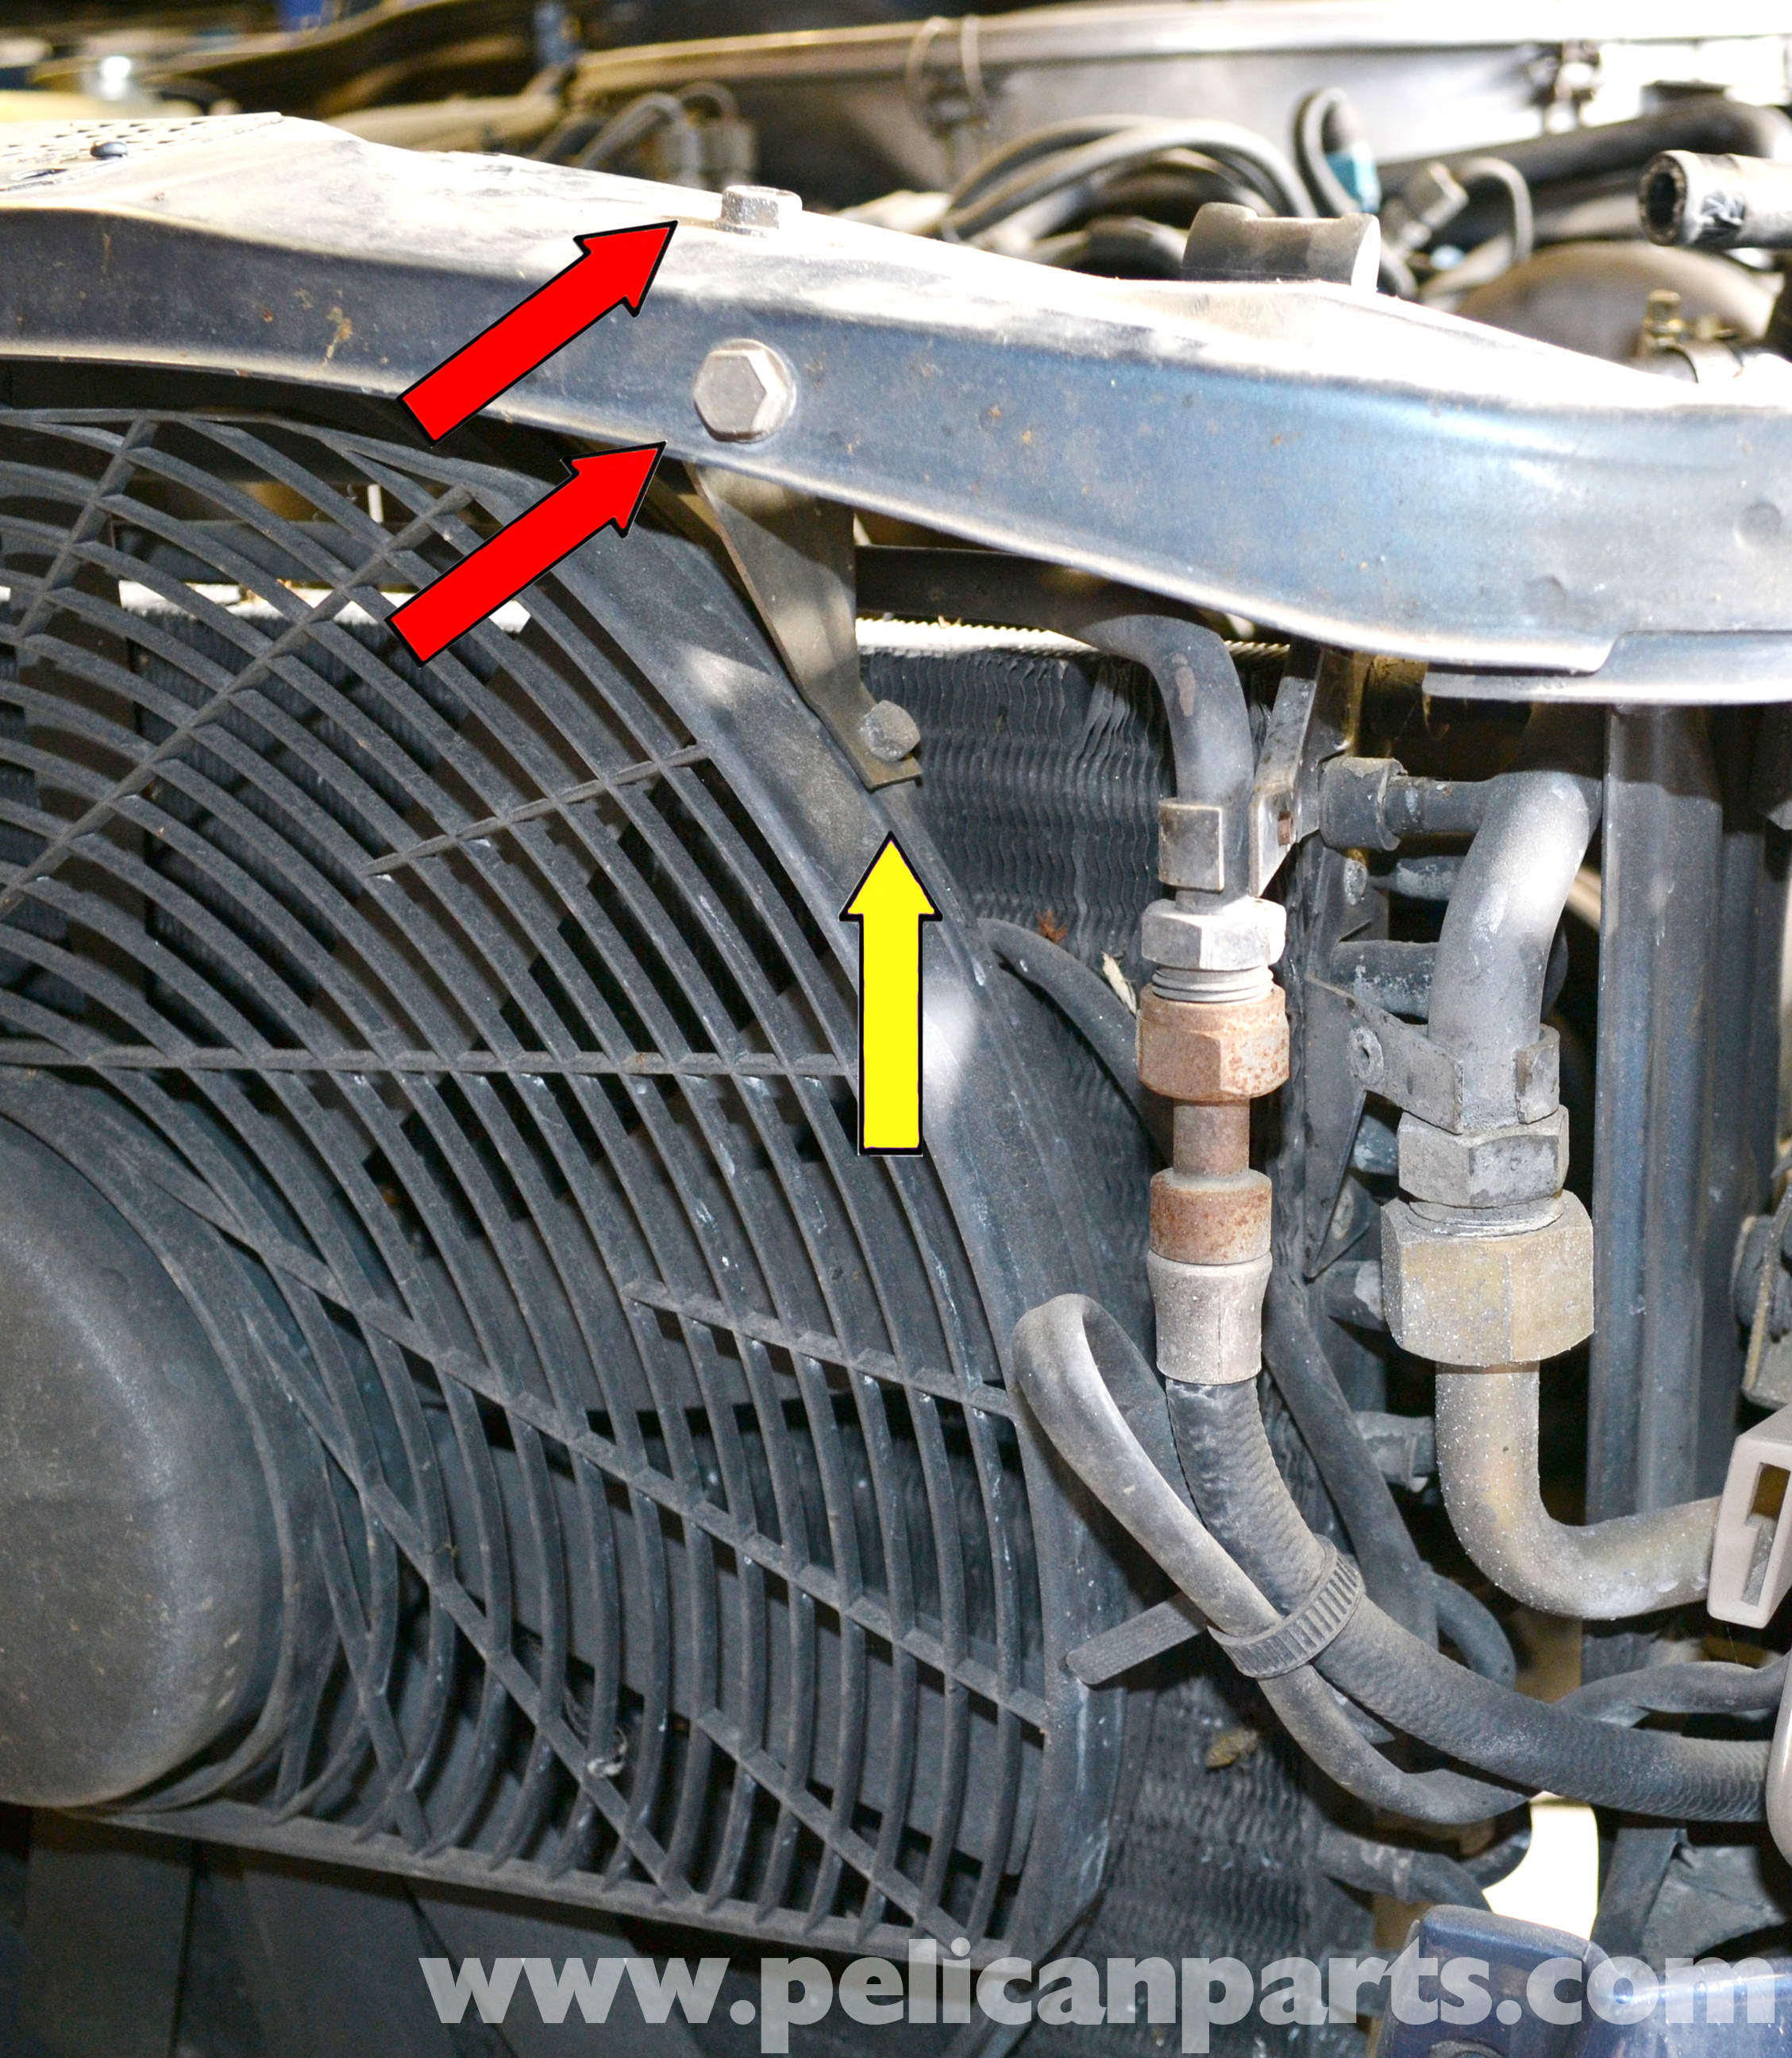 Mercedes-Benz S Class Replacing Your Mercedes-Benz Auxiliary Fan